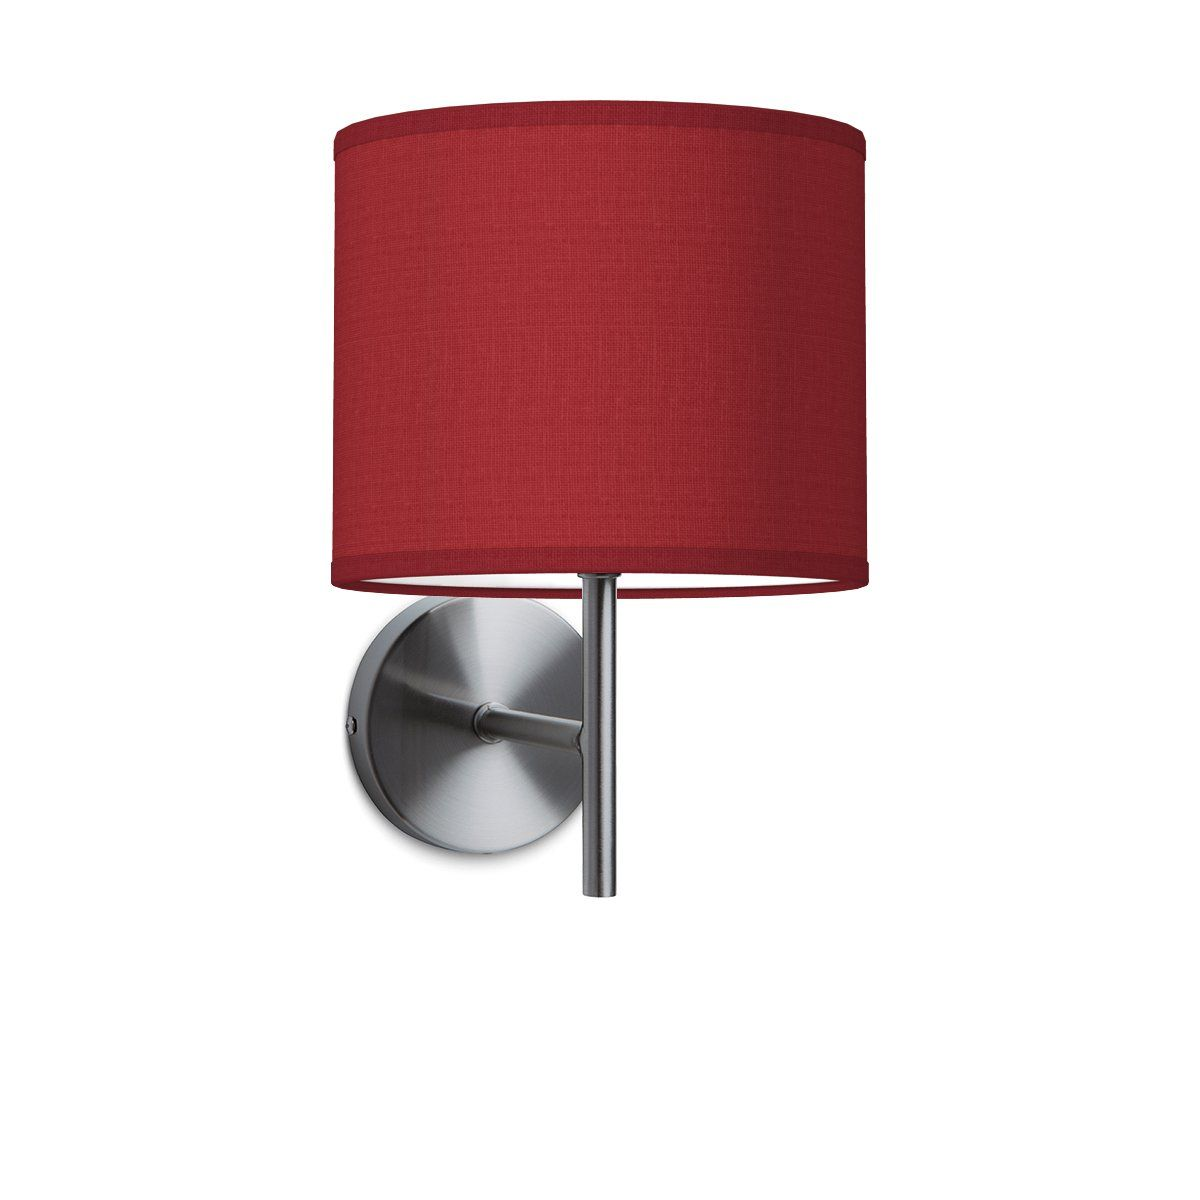 HOME SWEET HOME wandlamp mati bling Ø 20 cm - Pompeian red